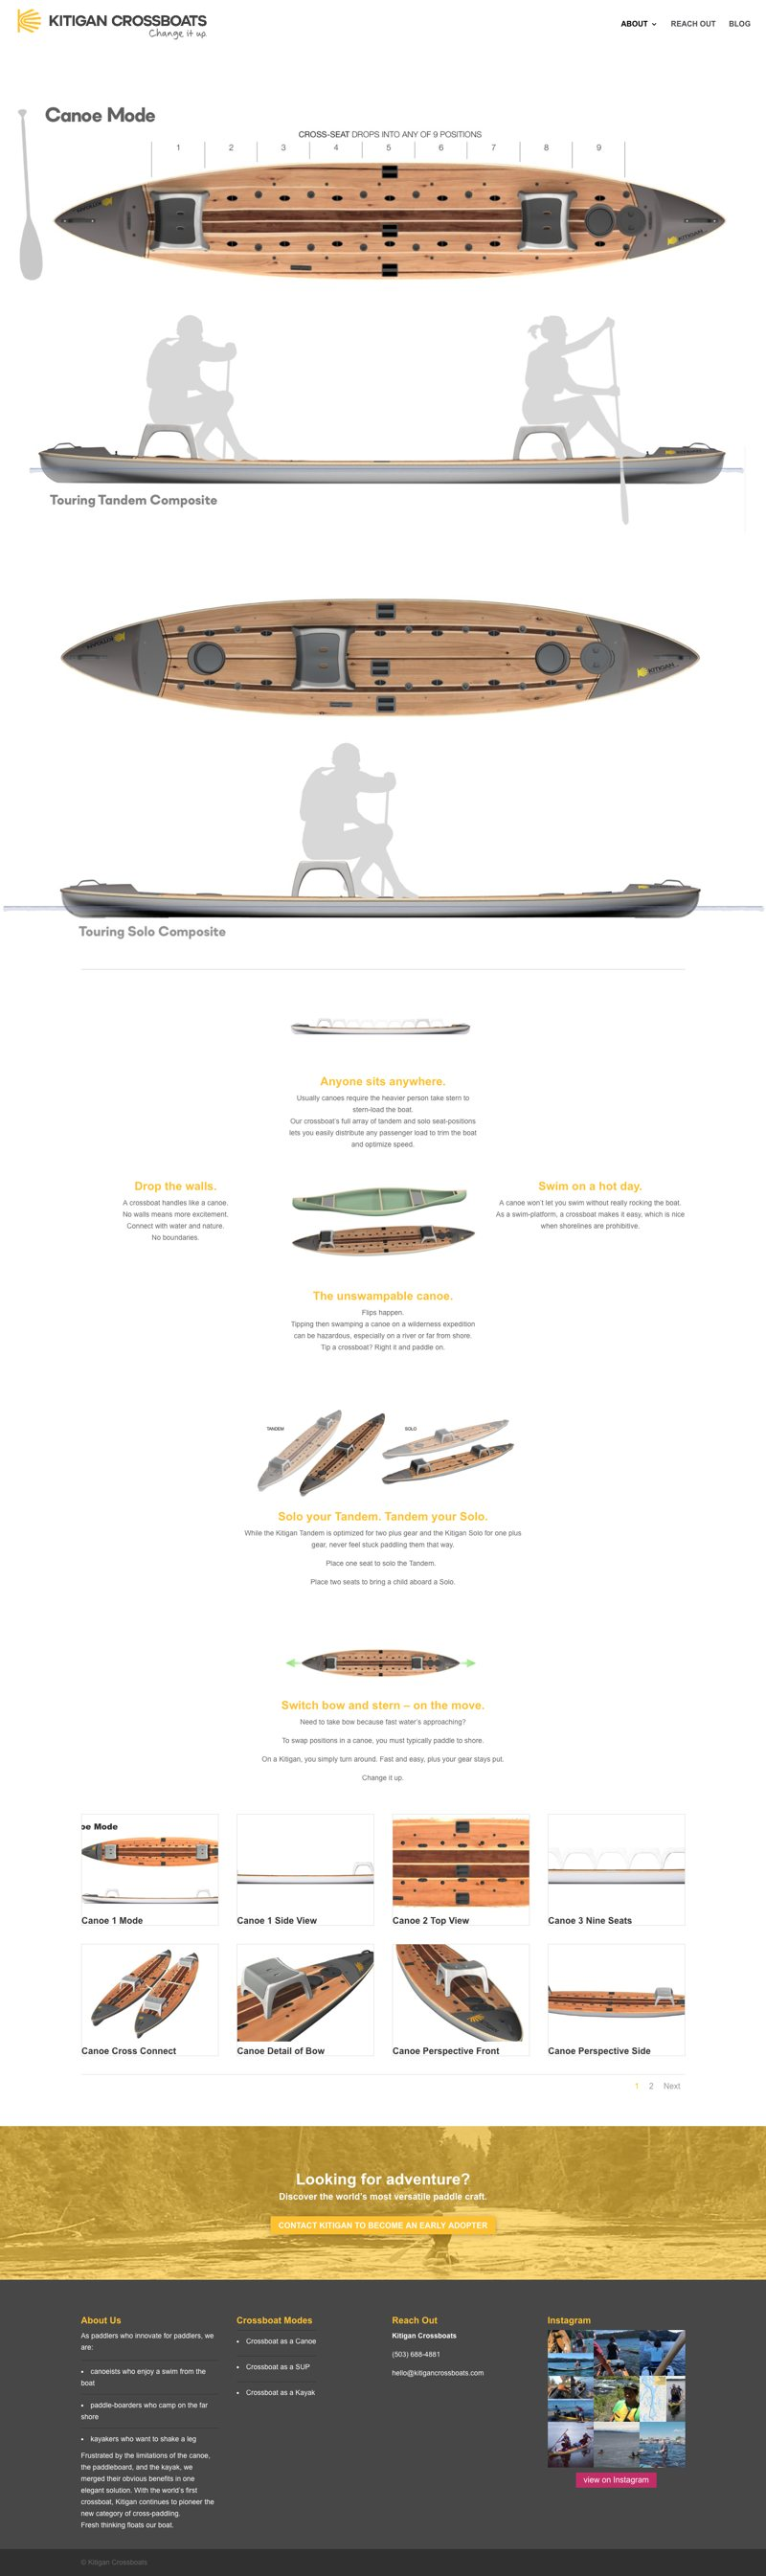 Kitigan Crossboats Website Canoe Page